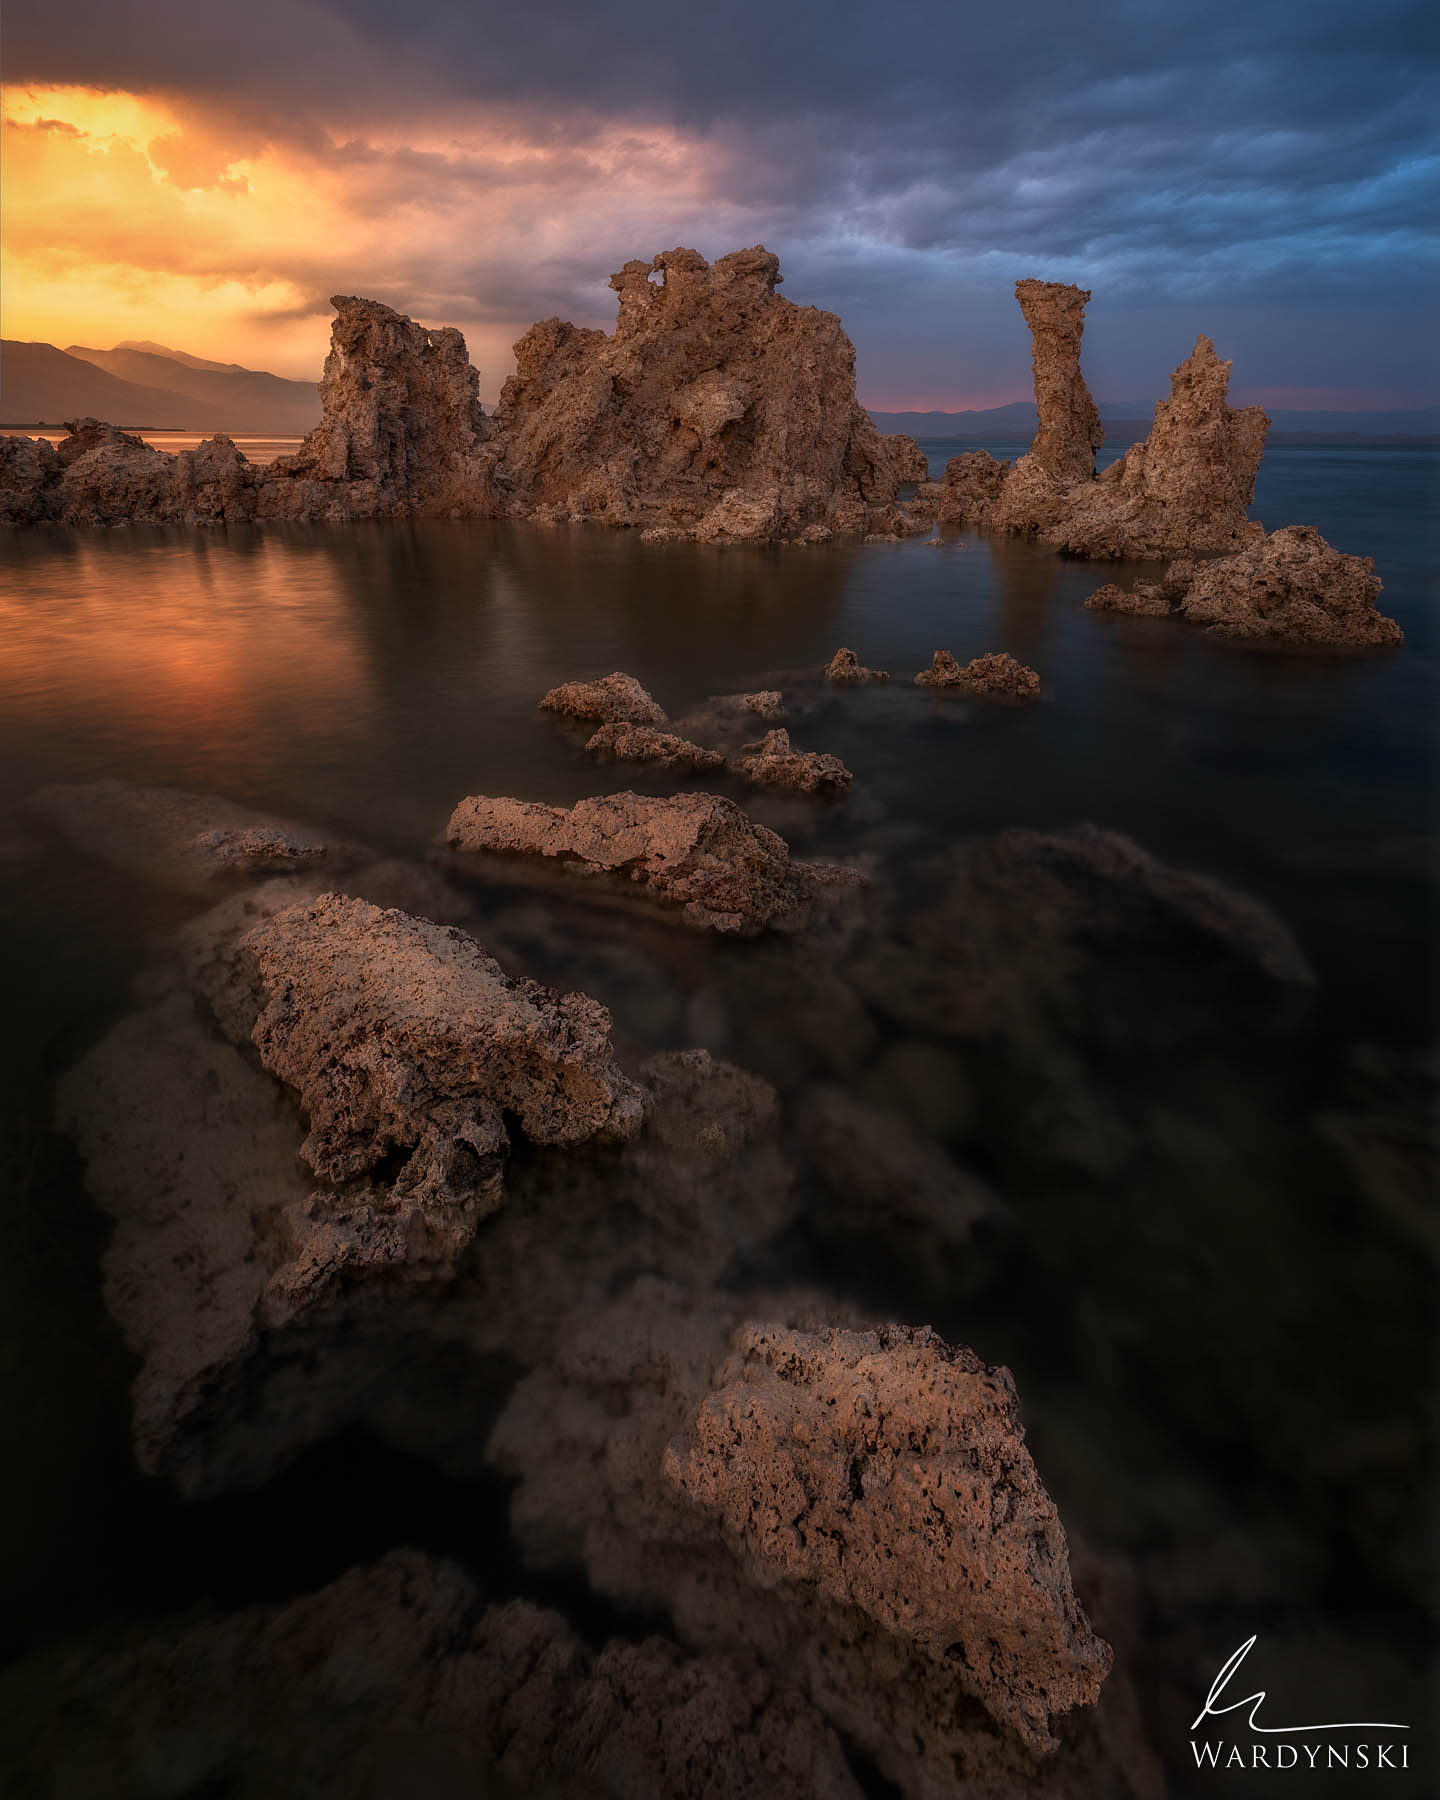 Fine Art Print | Limited Edition of 25  The strange rock formations in this image are called tufa. Tufa are limestone deposits...